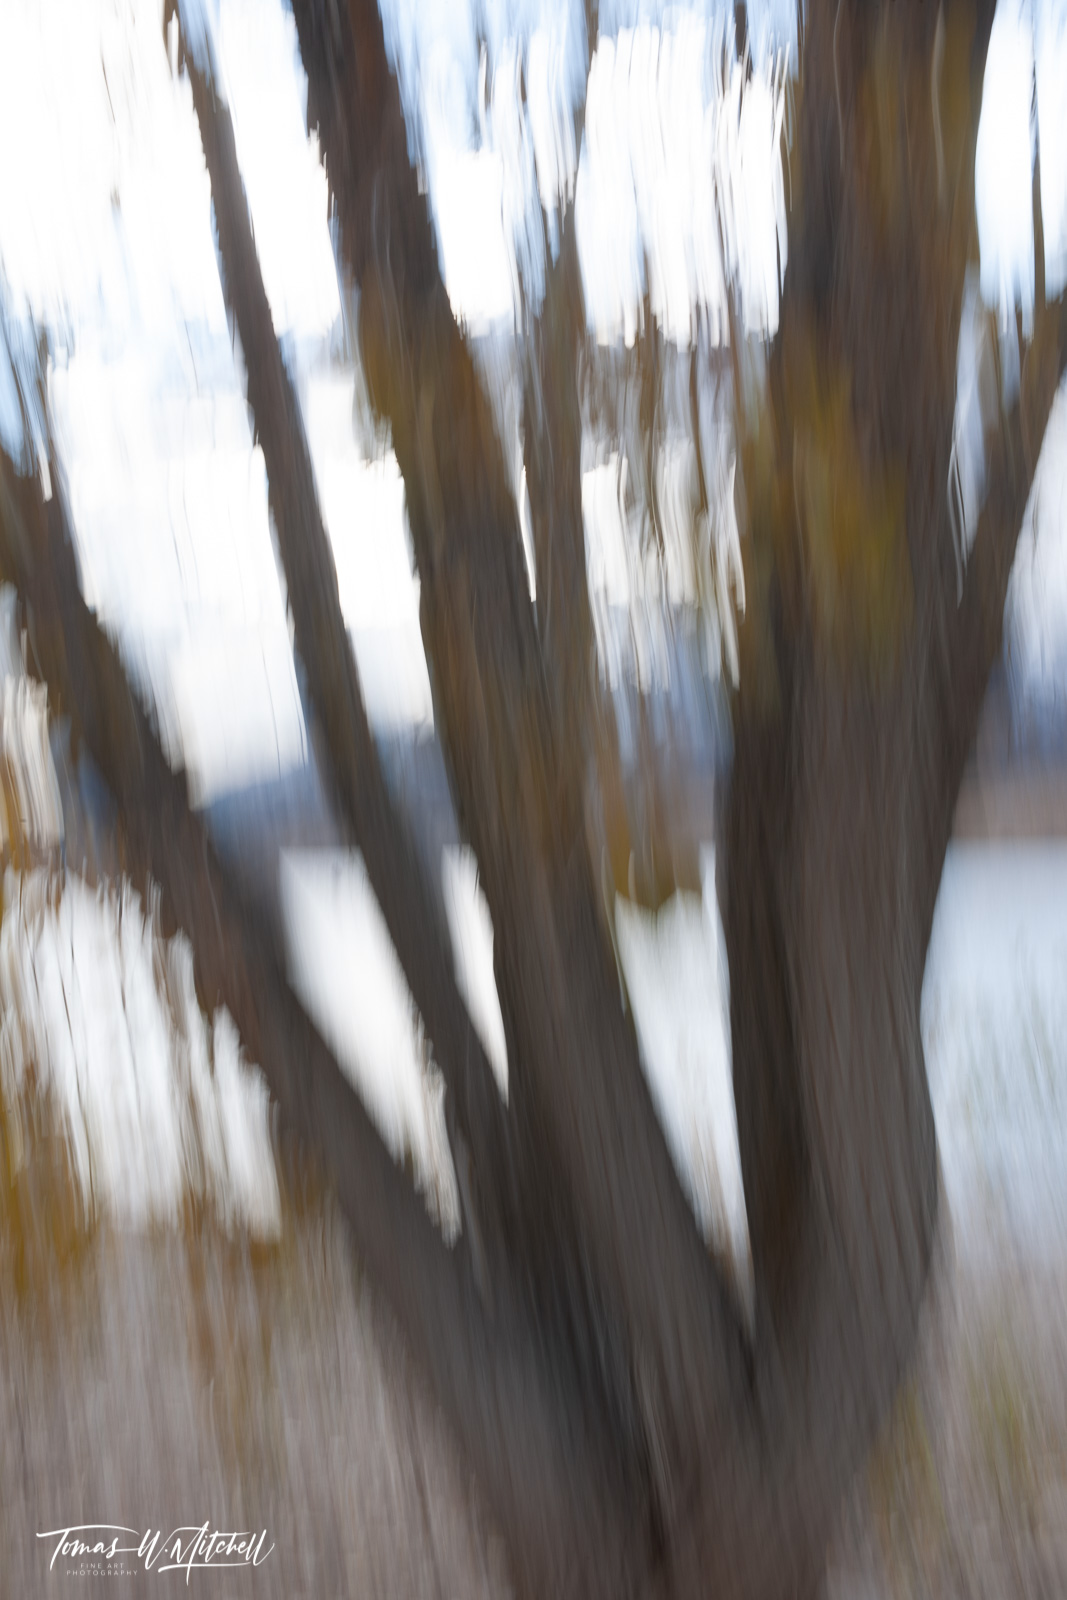 limted edition, fine art, prints, photograph, deer creek reservoir, utah, painted, yellow leaves, branches, shoreline, water, mountains, abstract, trees,, photo